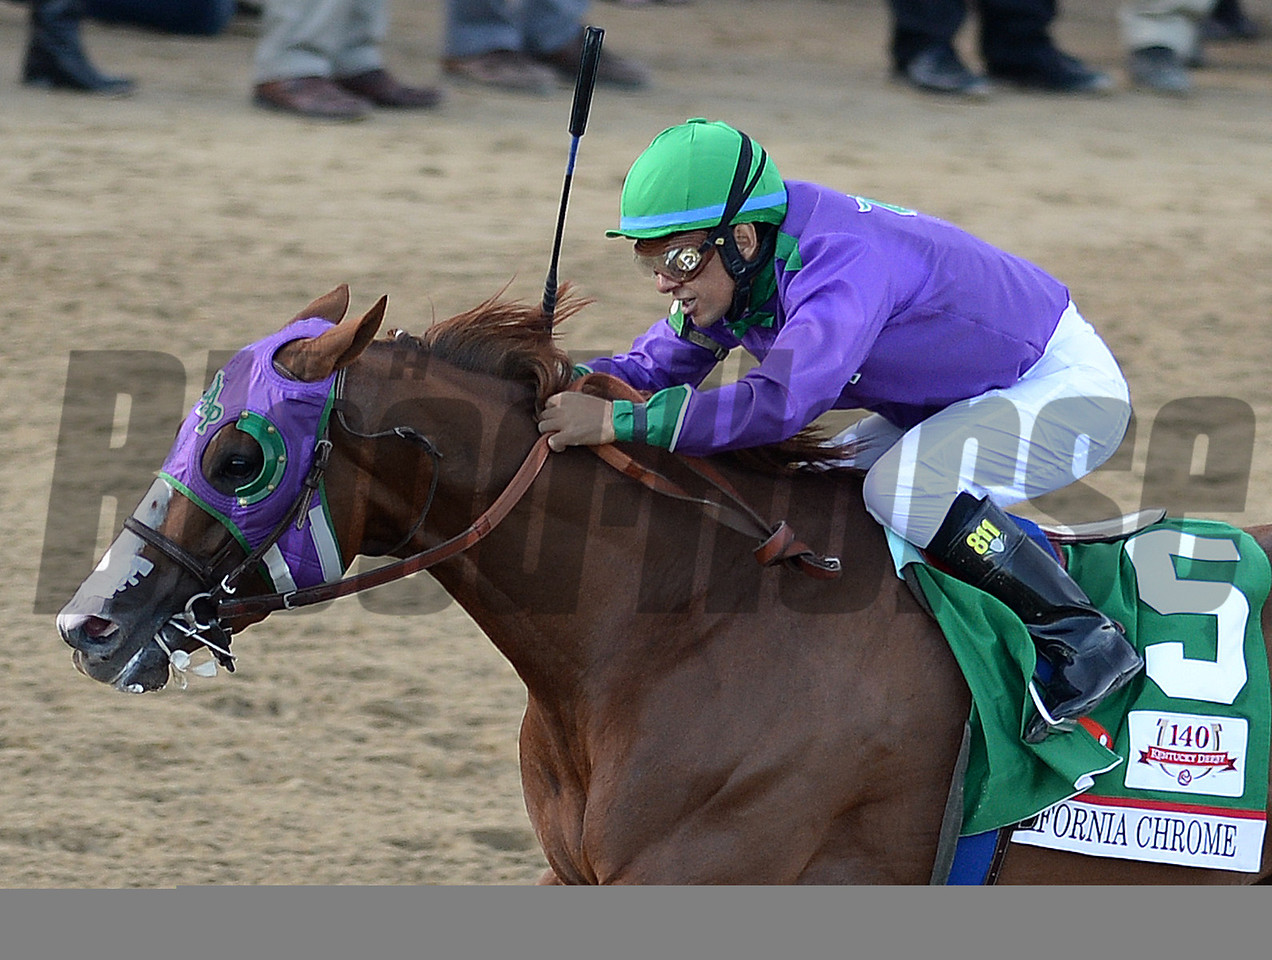 California Chrome,Victor Espinoza up, wins the 140th Kentucky Derby, Churchill Downs, Louisville, KY 5/3/14, photo by Mathea Kelley;